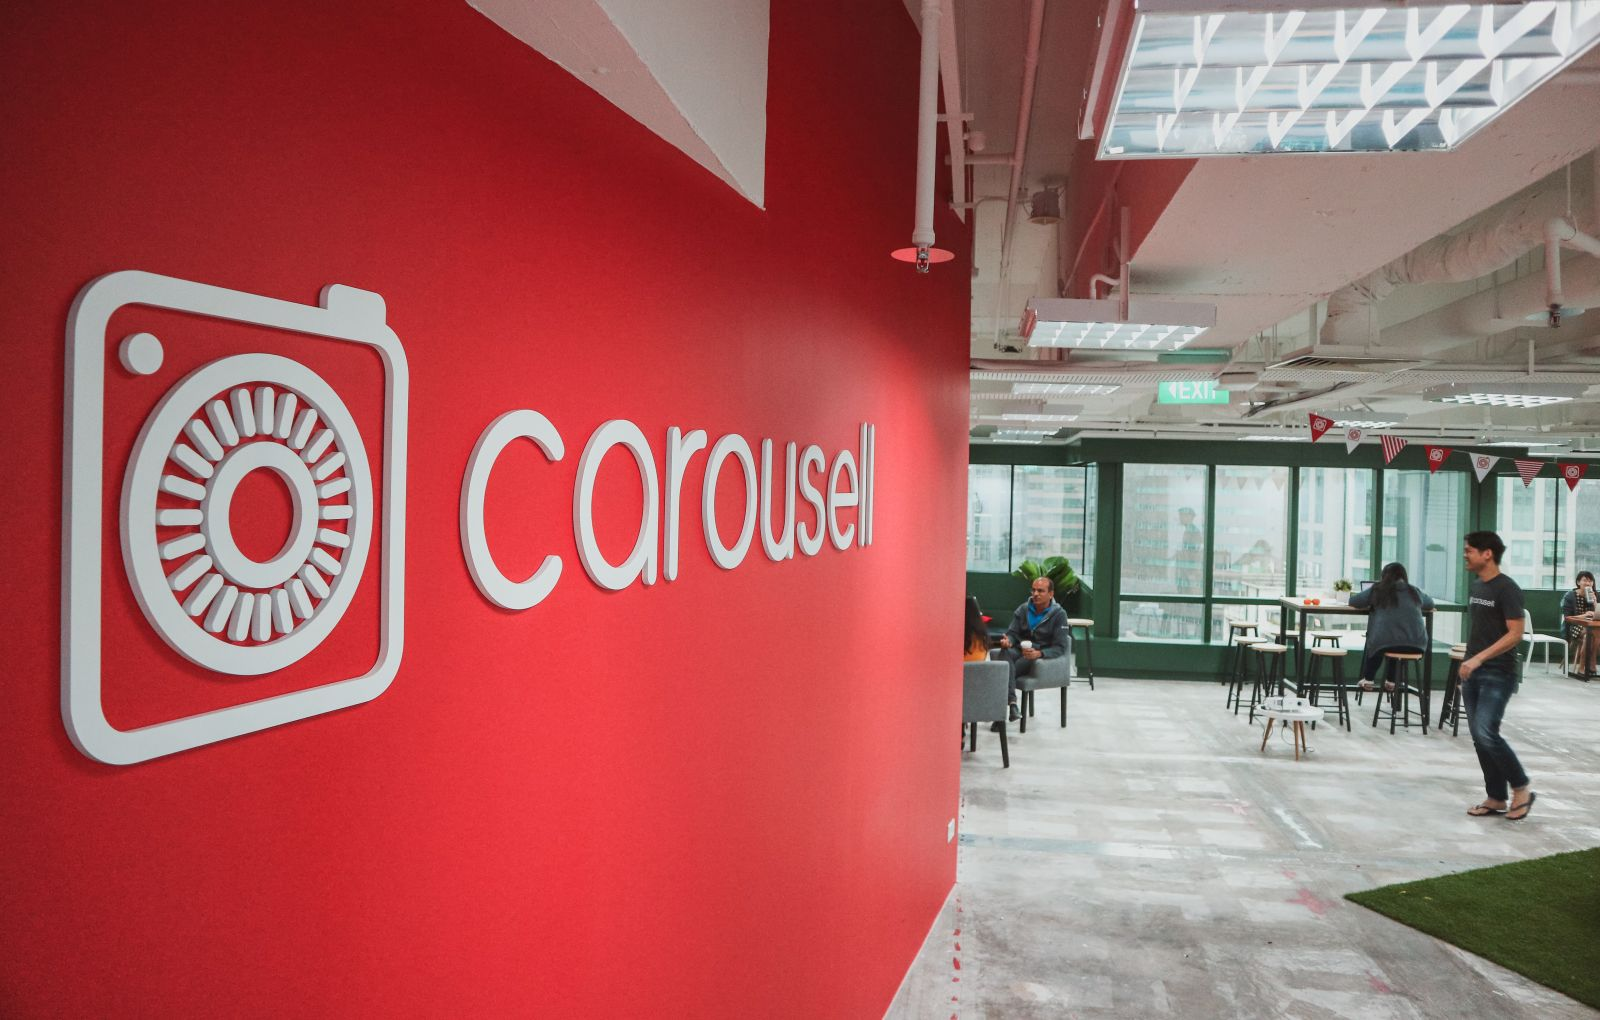 Teen arrested for concert ticket scam on Carousell worth $5,400